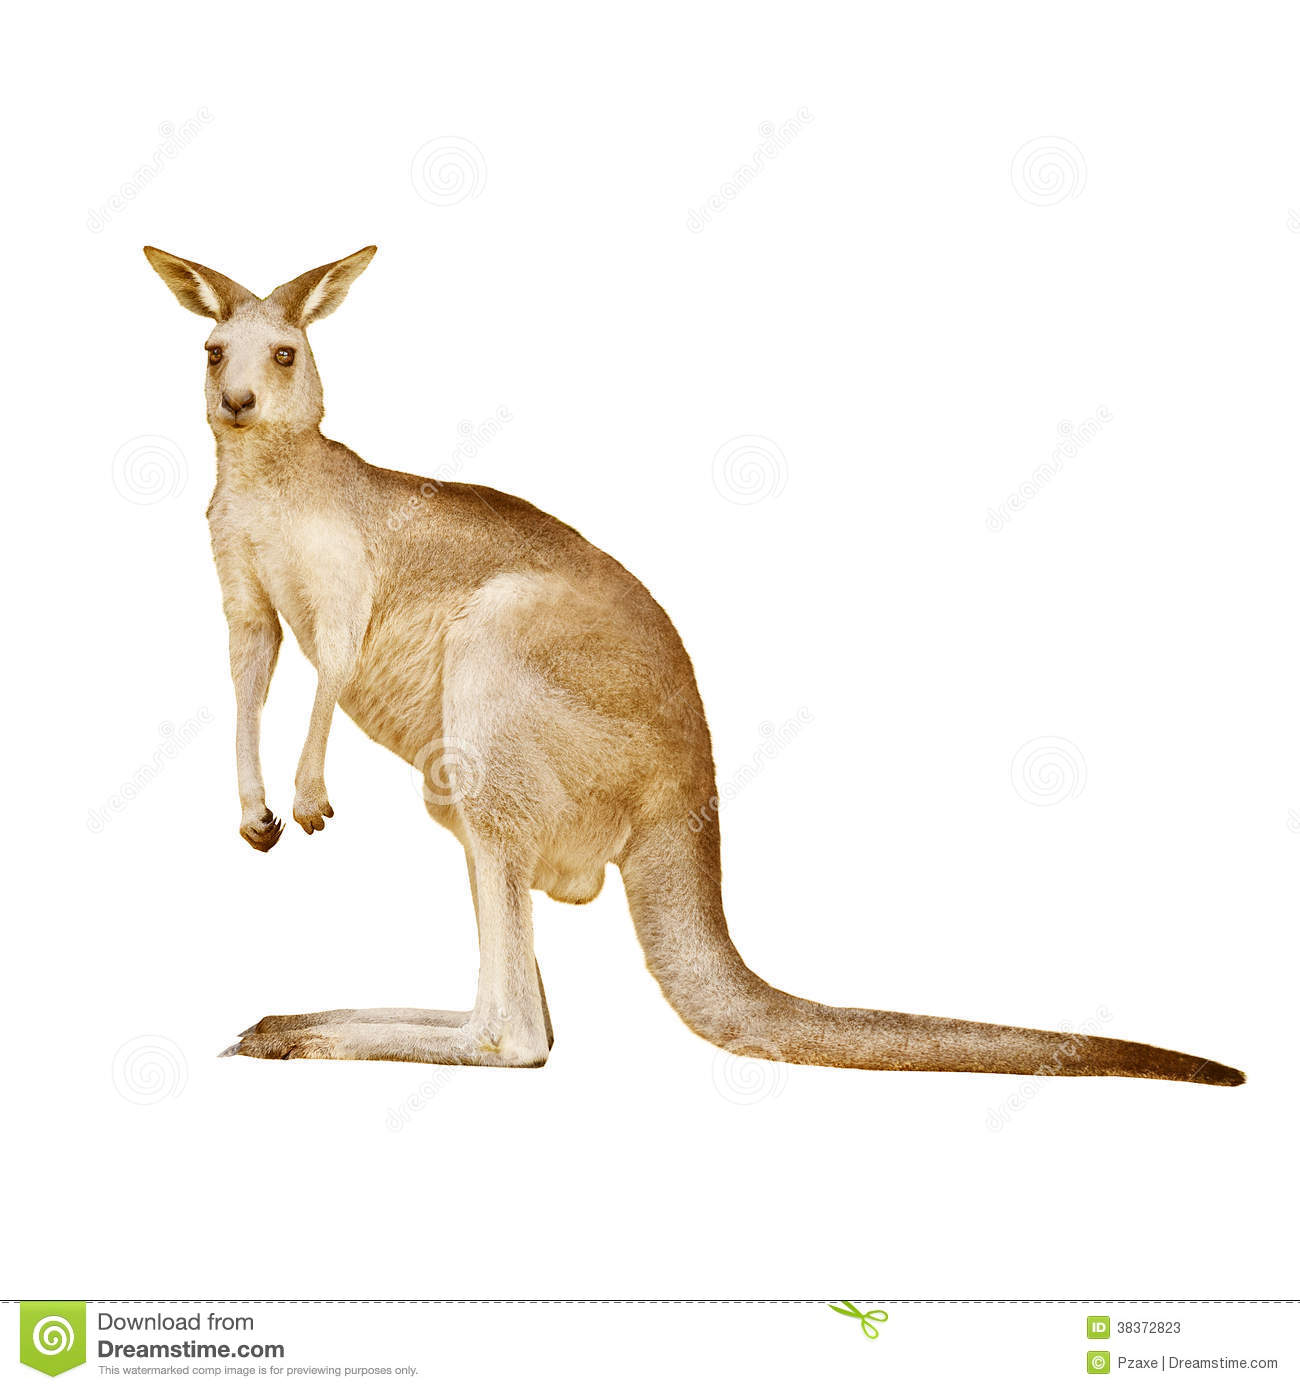 Australian kangaroo isolated on a white background stock image image 38372823 - Image kangourou ...